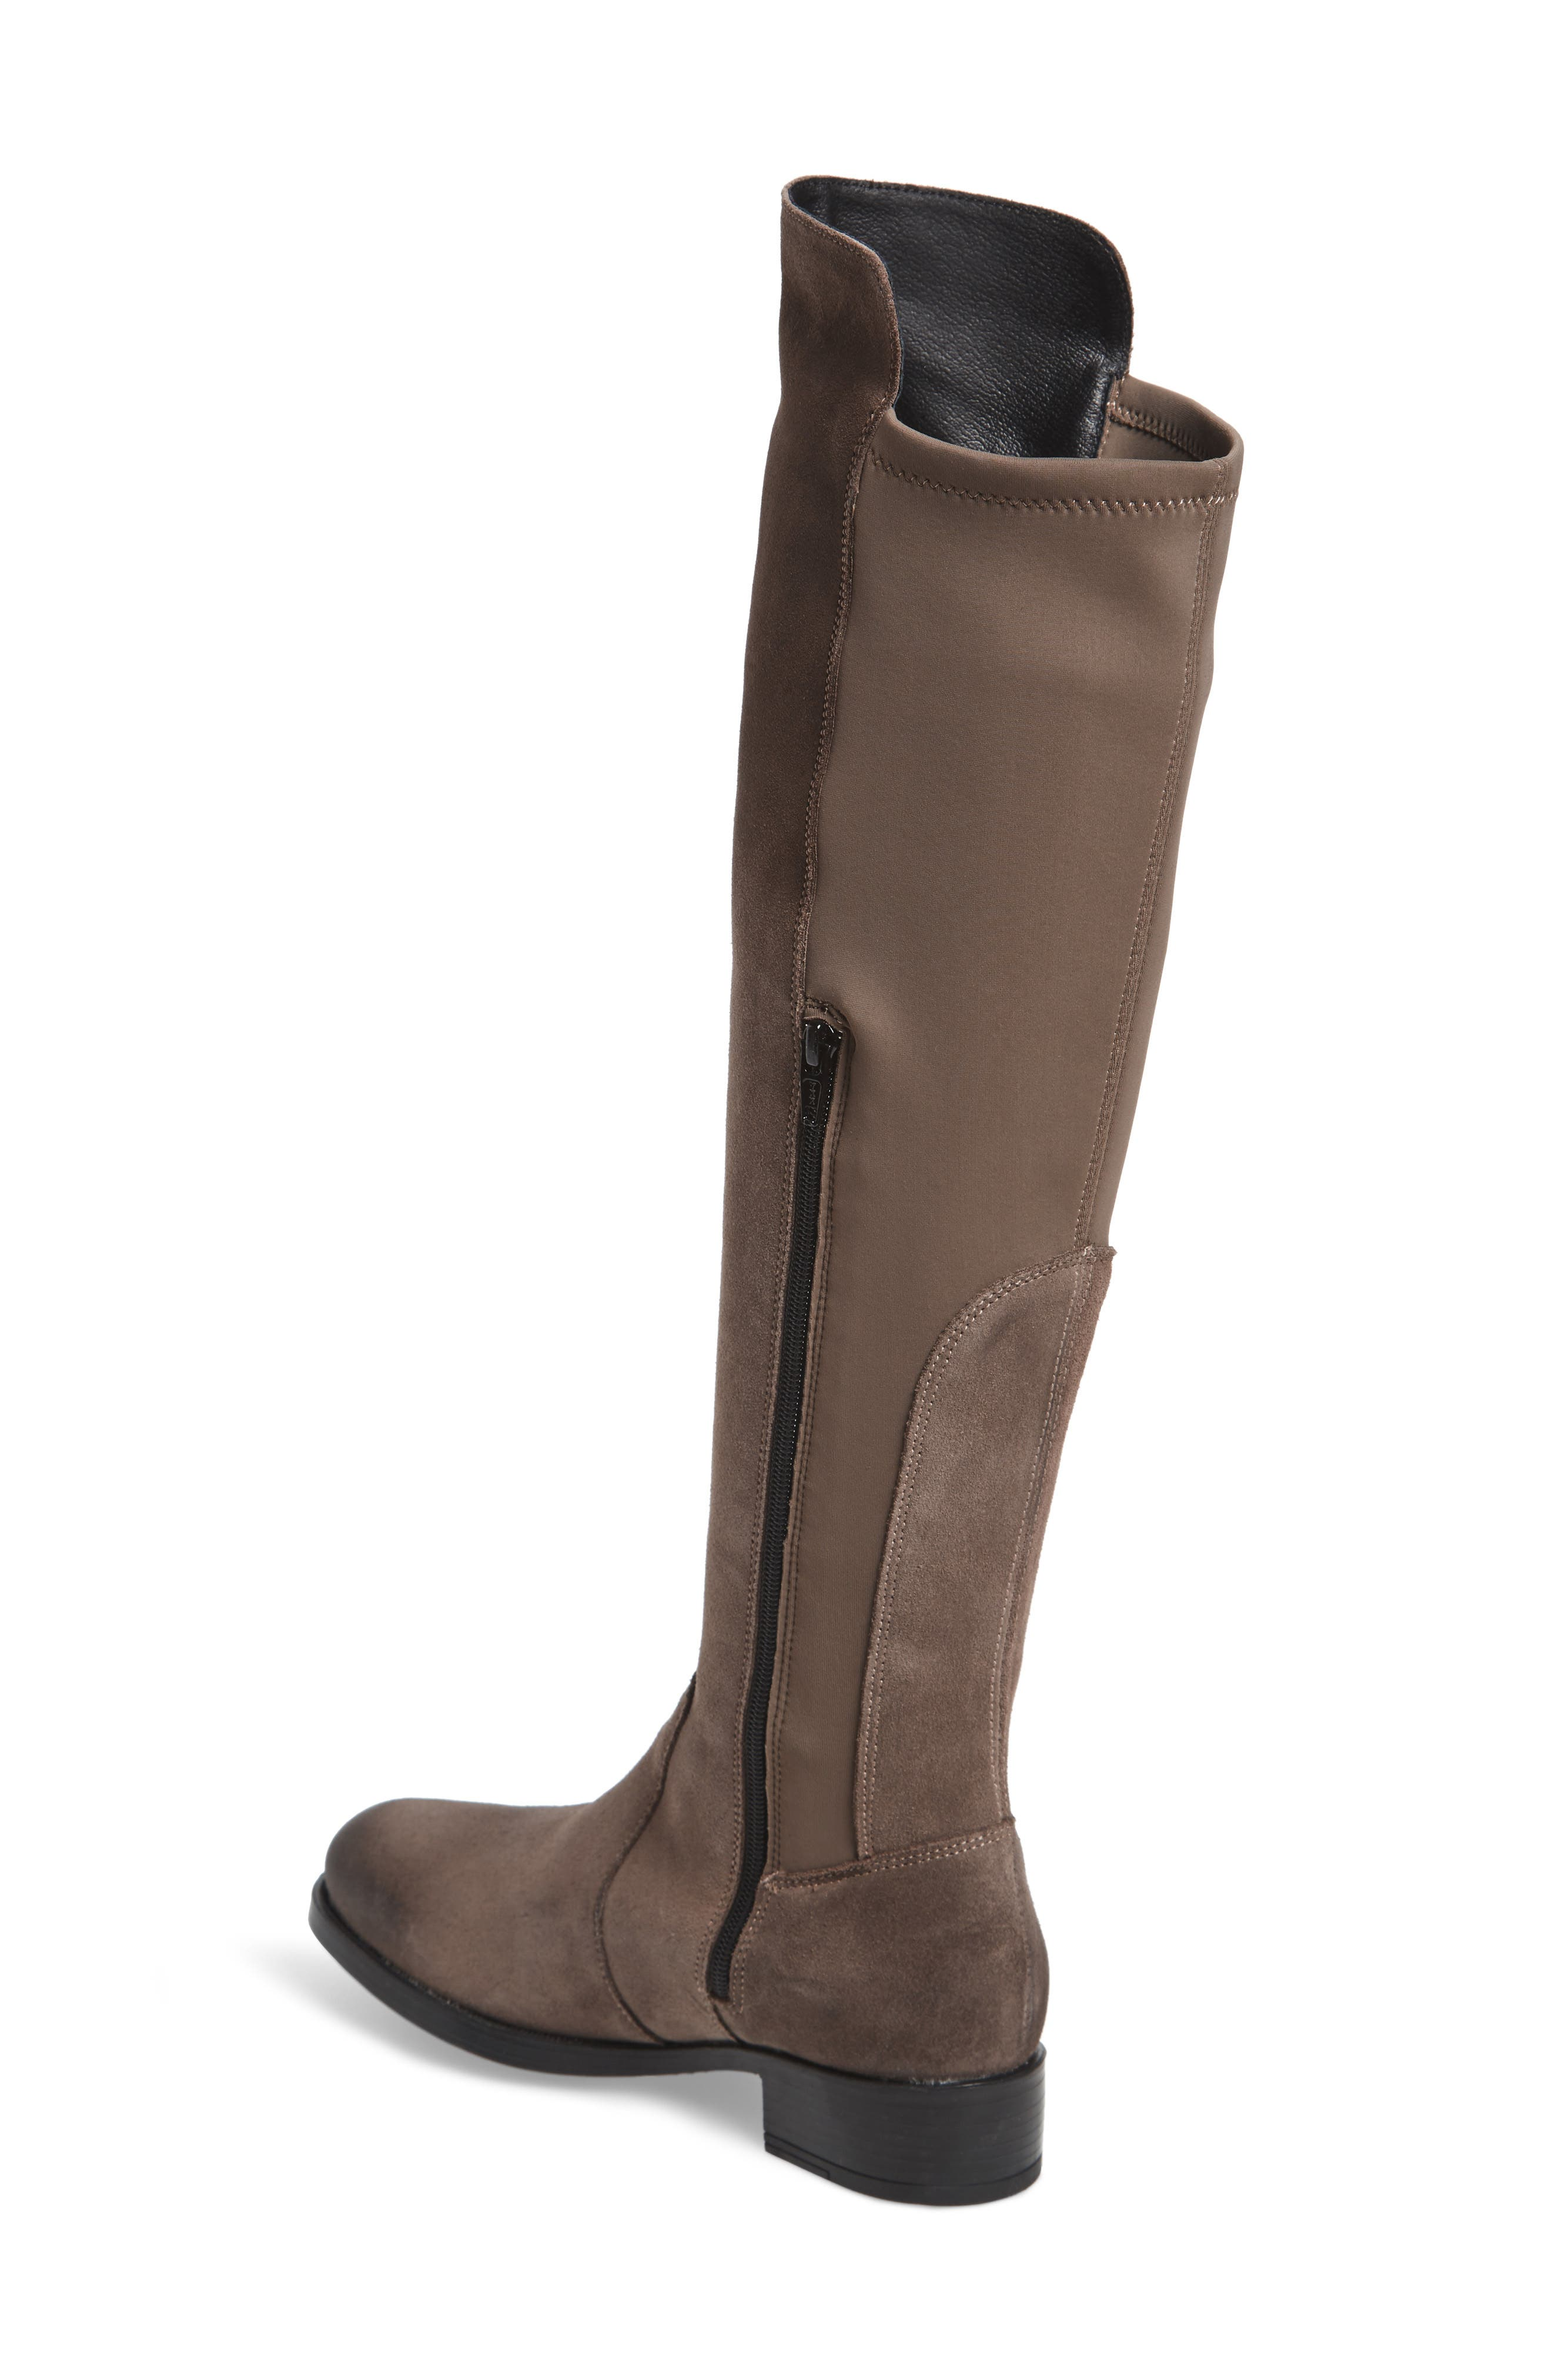 Bunt Waterproof Over the Knee Boot,                             Alternate thumbnail 2, color,                             Elephant Suede Leather